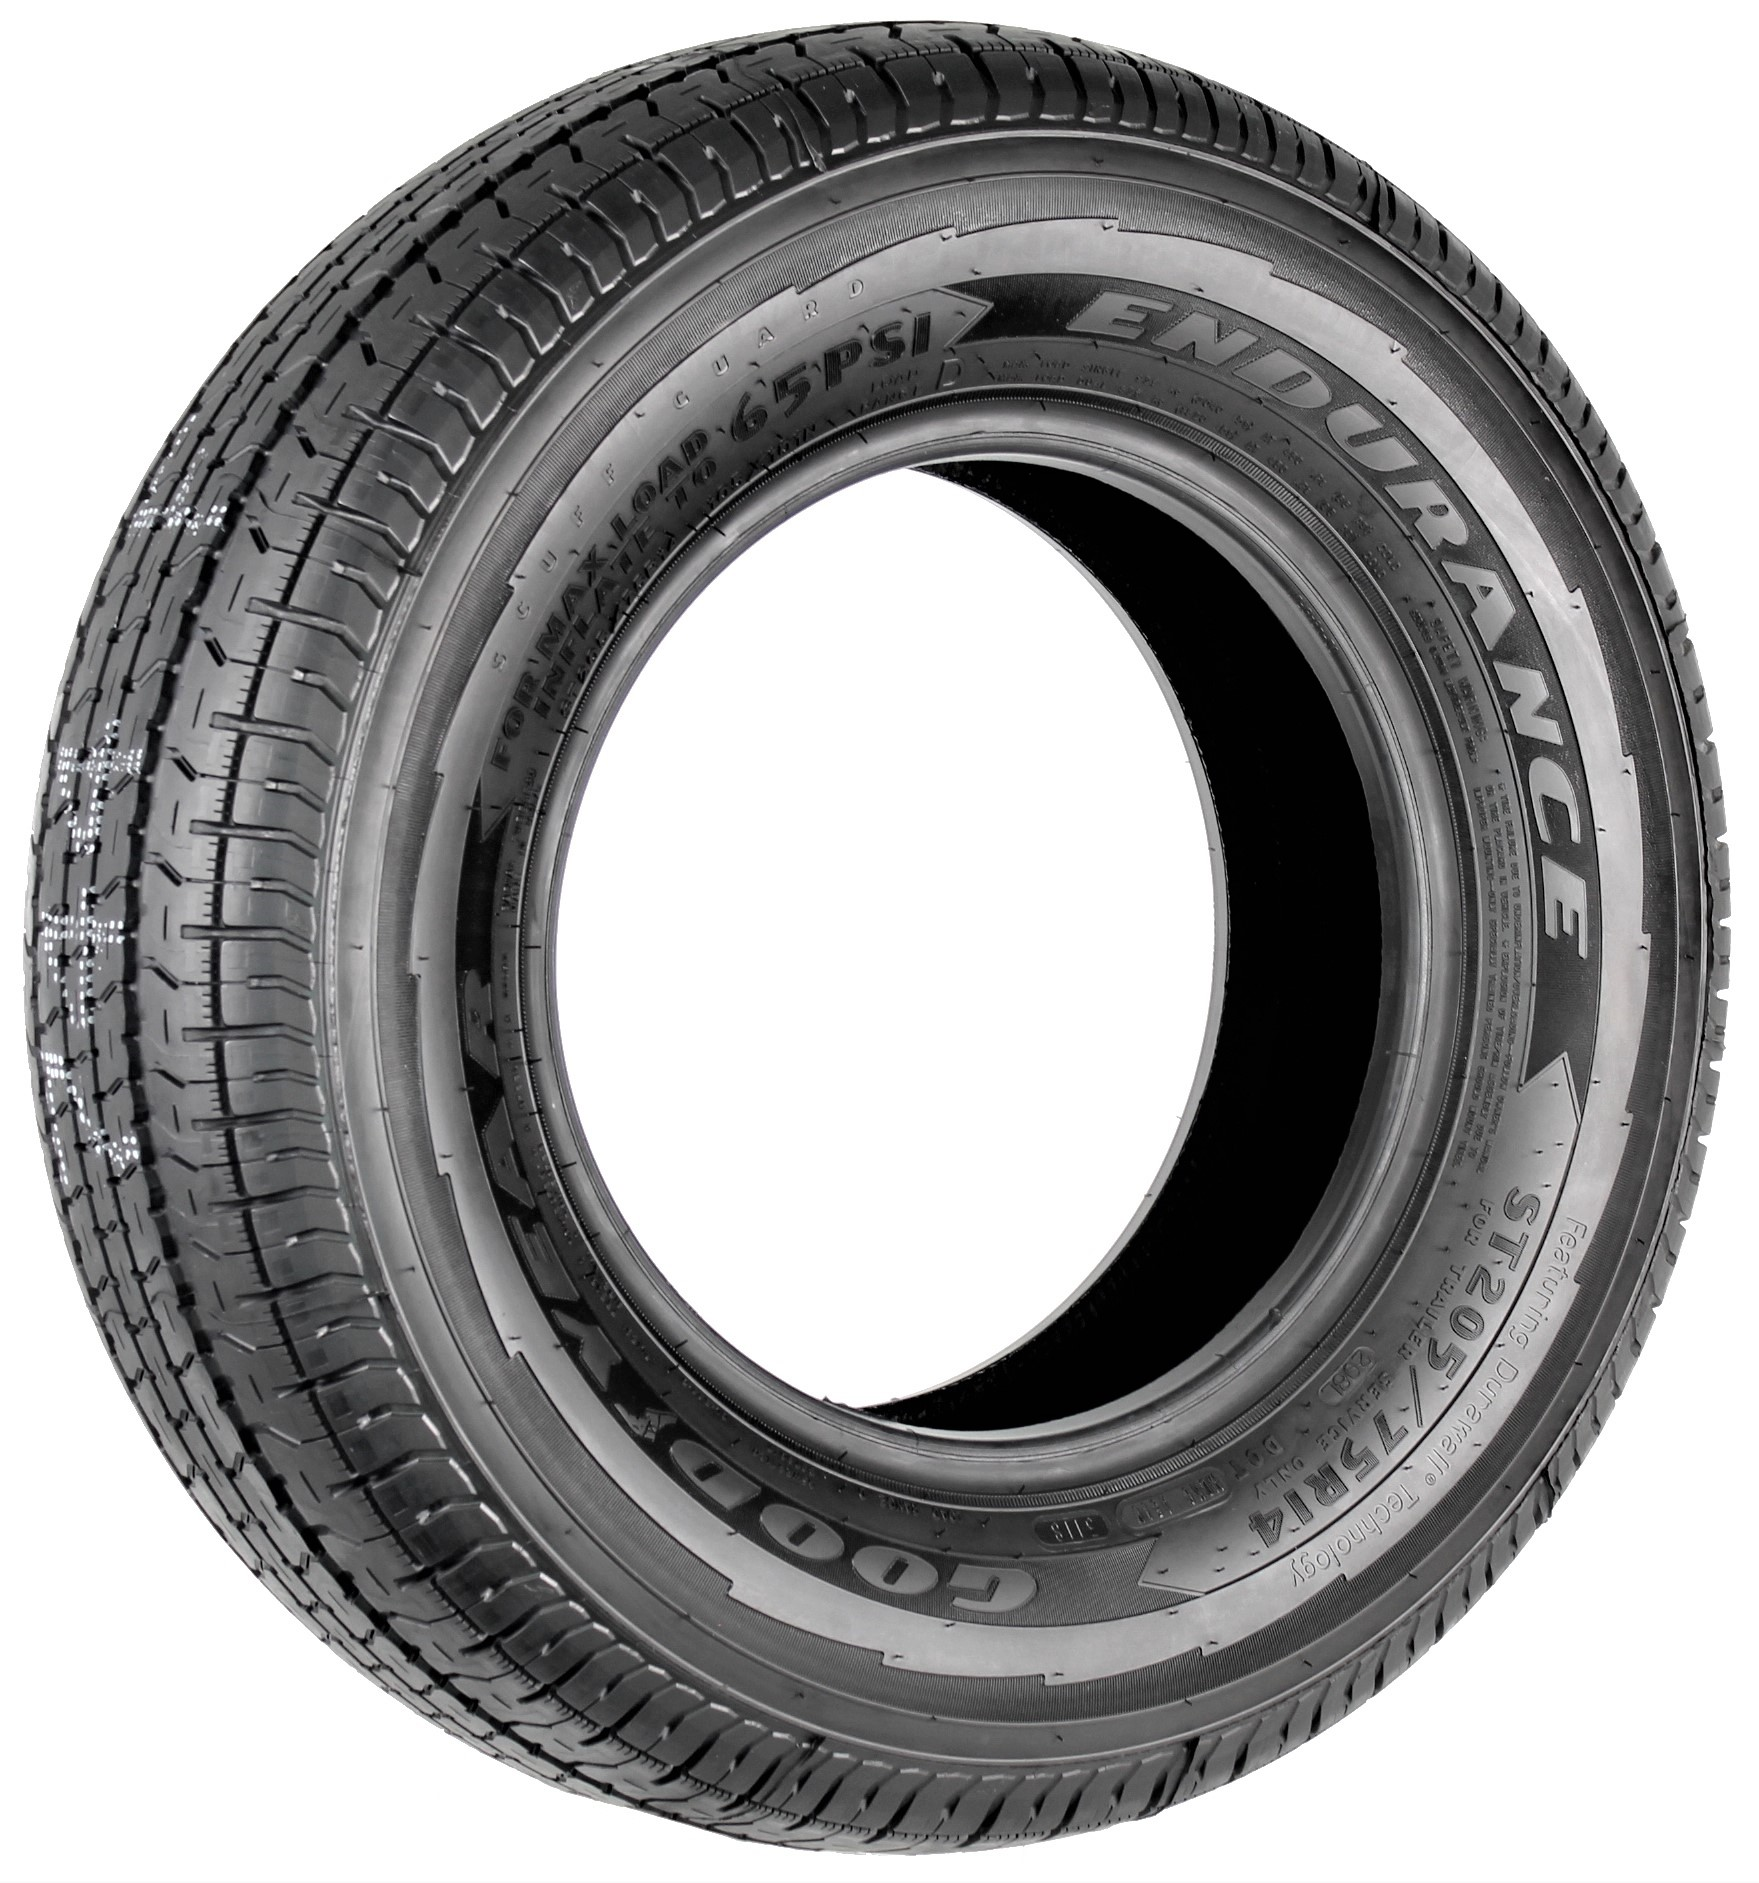 Goodyear Endurance ST205/75R14 LRD Radial Trailer Tire Image